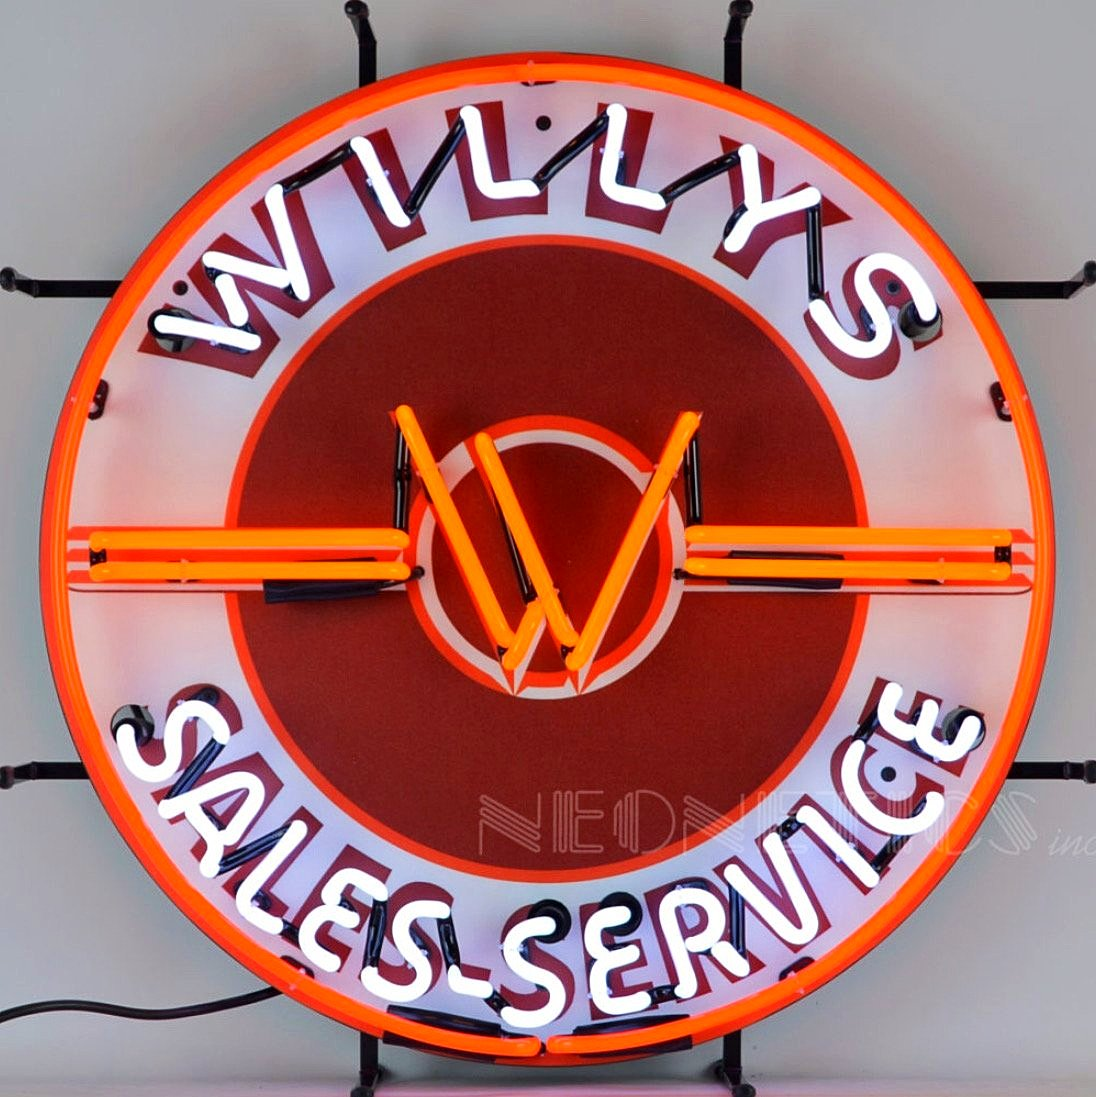 Willy's Jeep Sales & Service Neon Sign